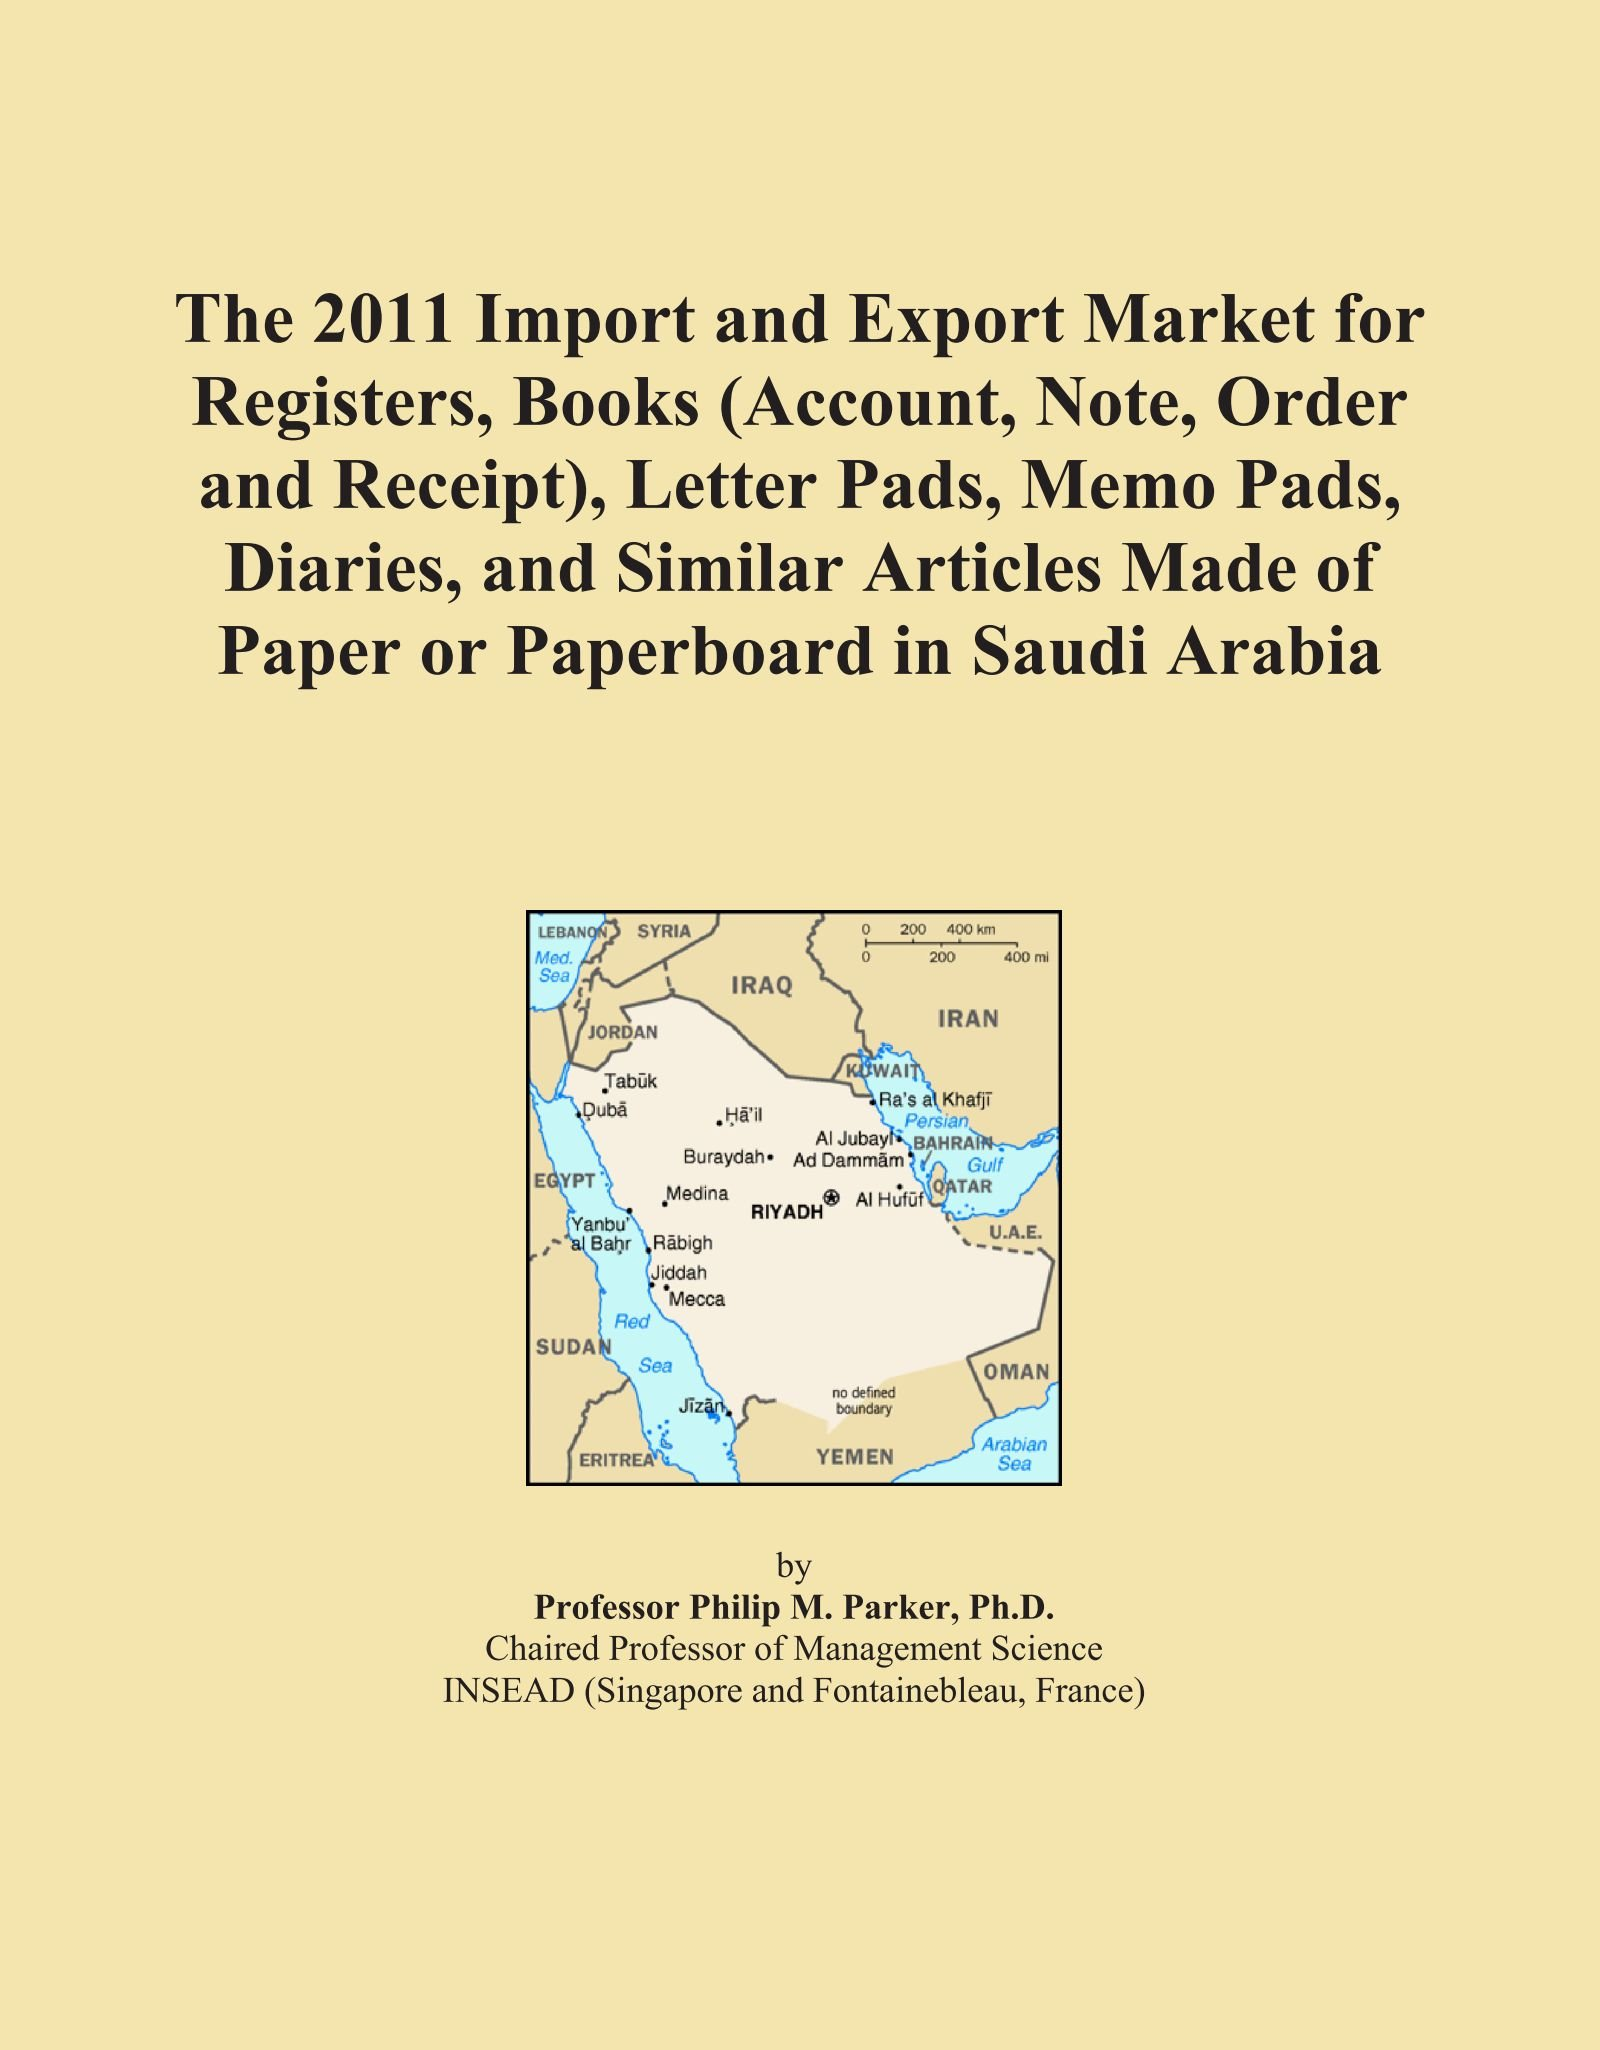 Download The 2011 Import and Export Market for Registers, Books (Account, Note, Order and Receipt), Letter Pads, Memo Pads, Diaries, and Similar Articles Made of Paper or Paperboard in Saudi Arabia pdf